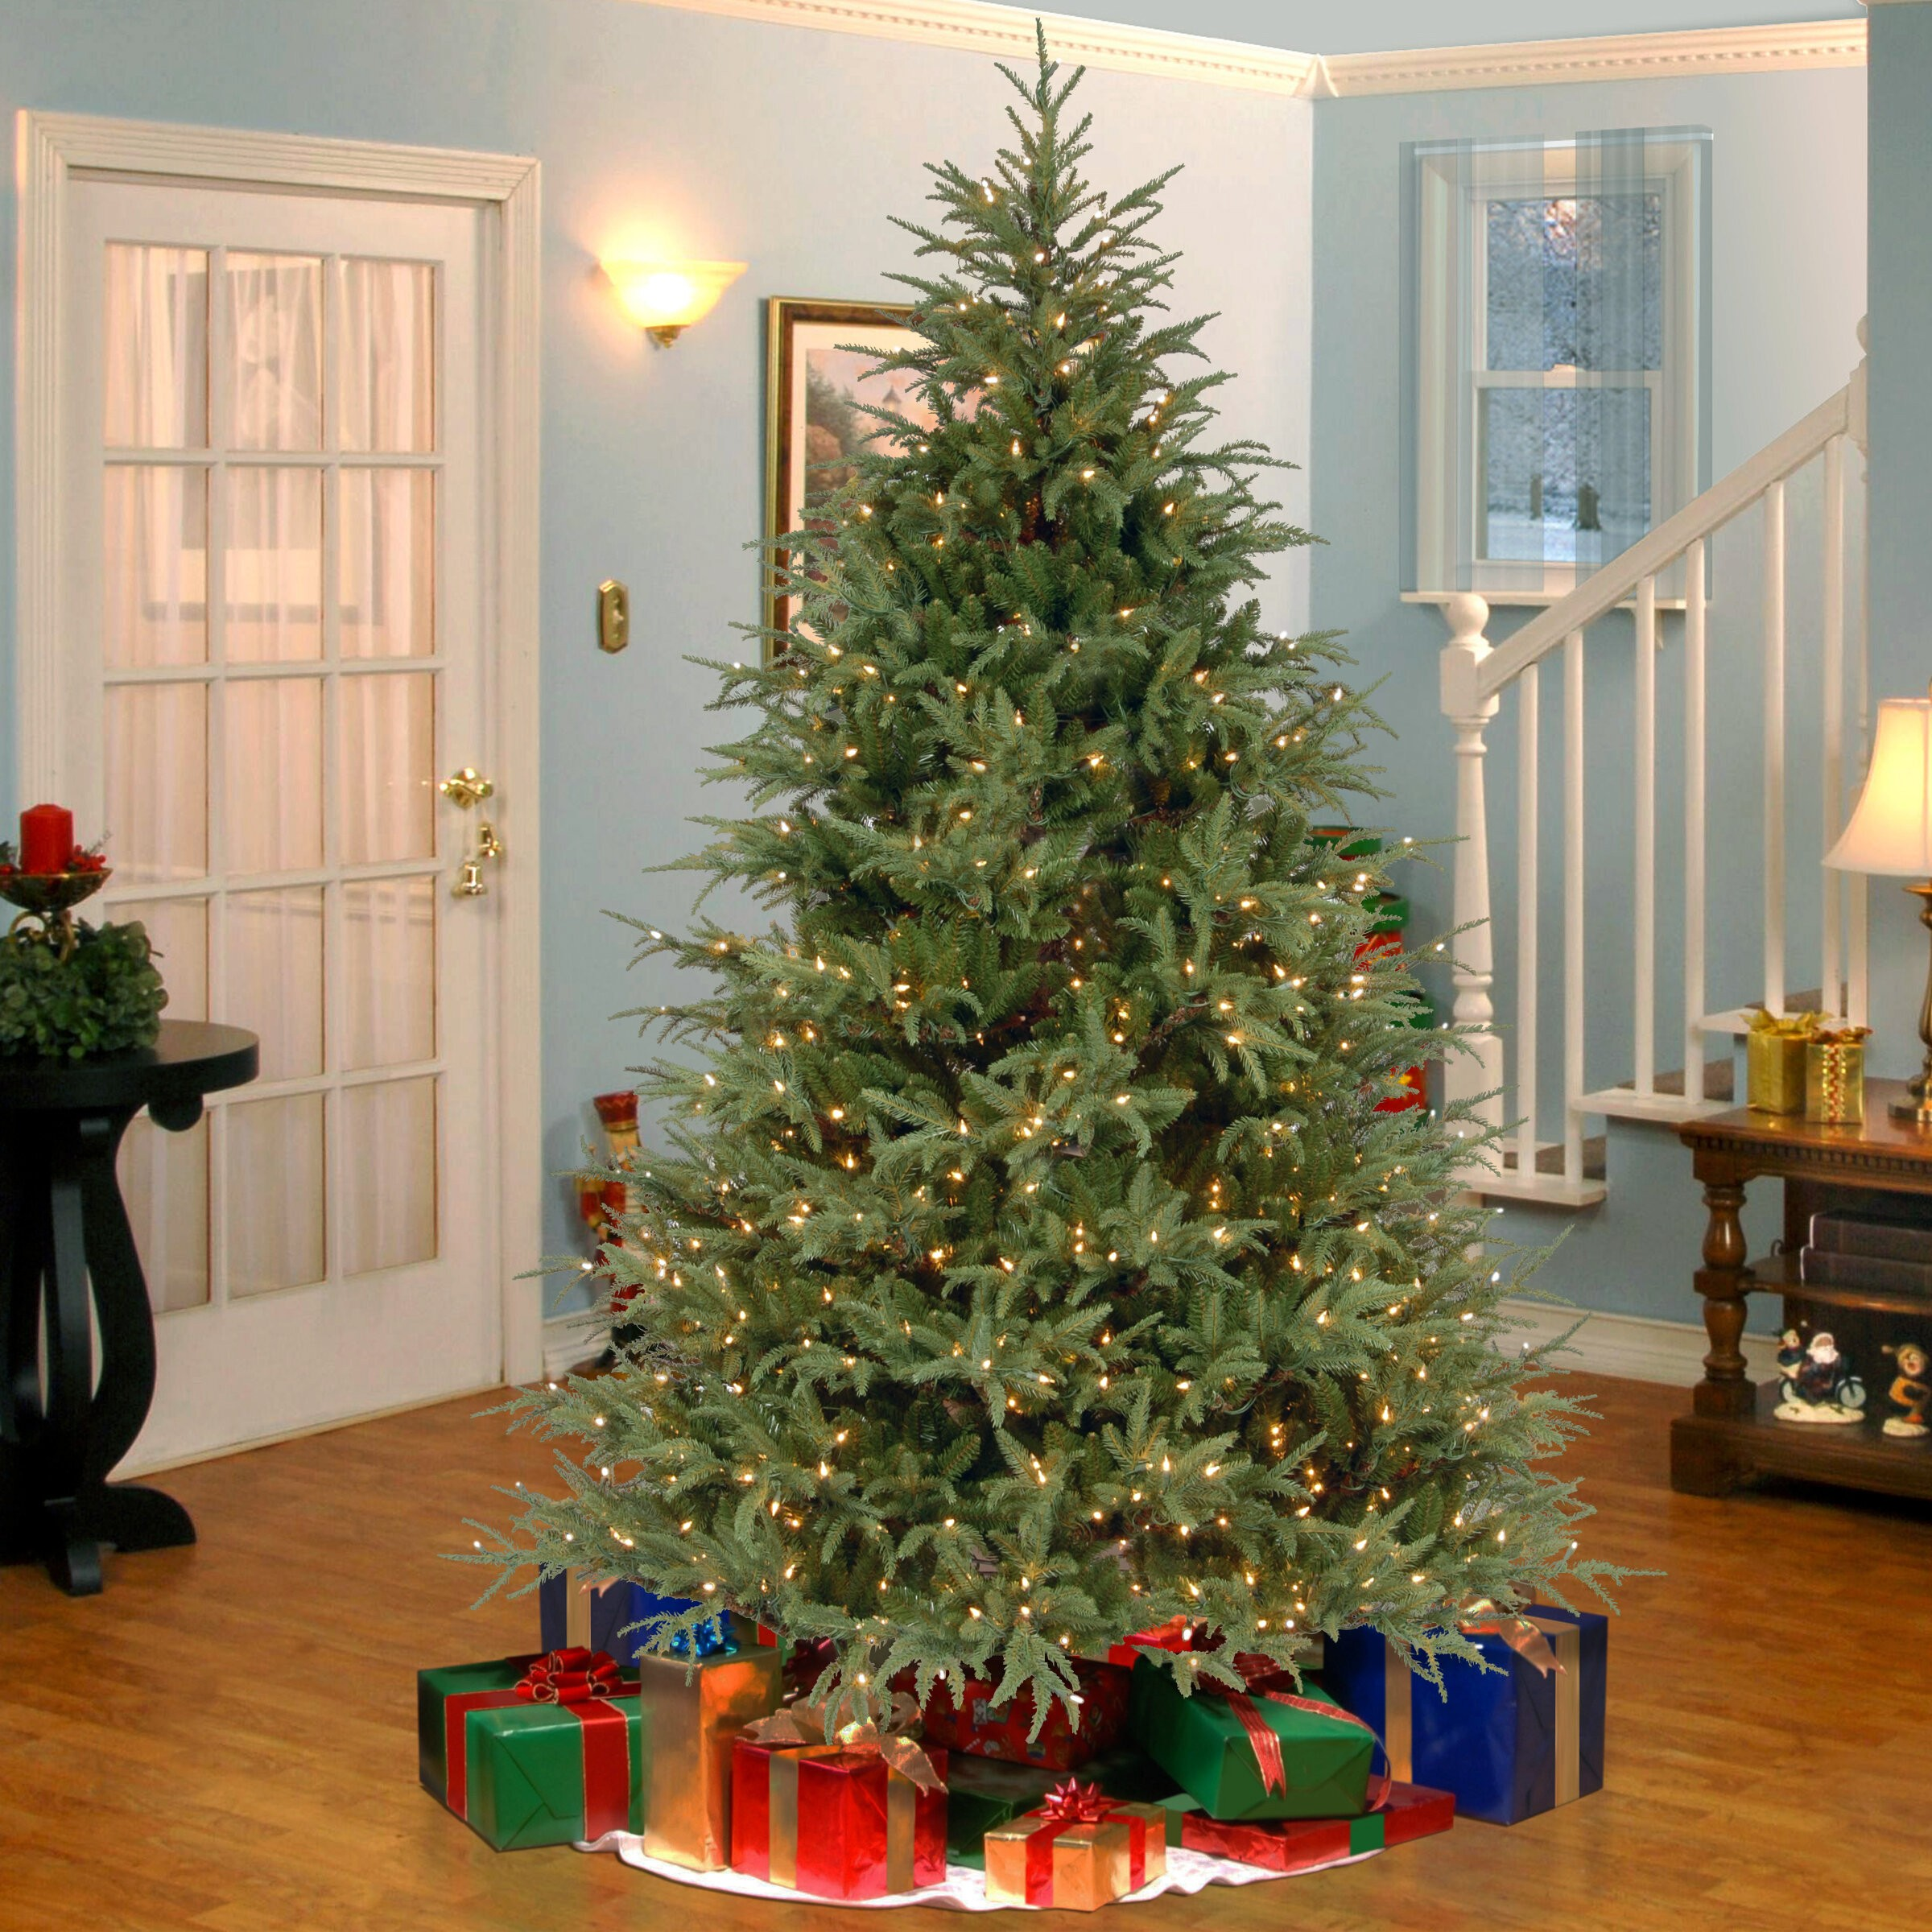 Frasier Grande 7.5' Green Artificial Christmas Tree with 1000 Clear Lights